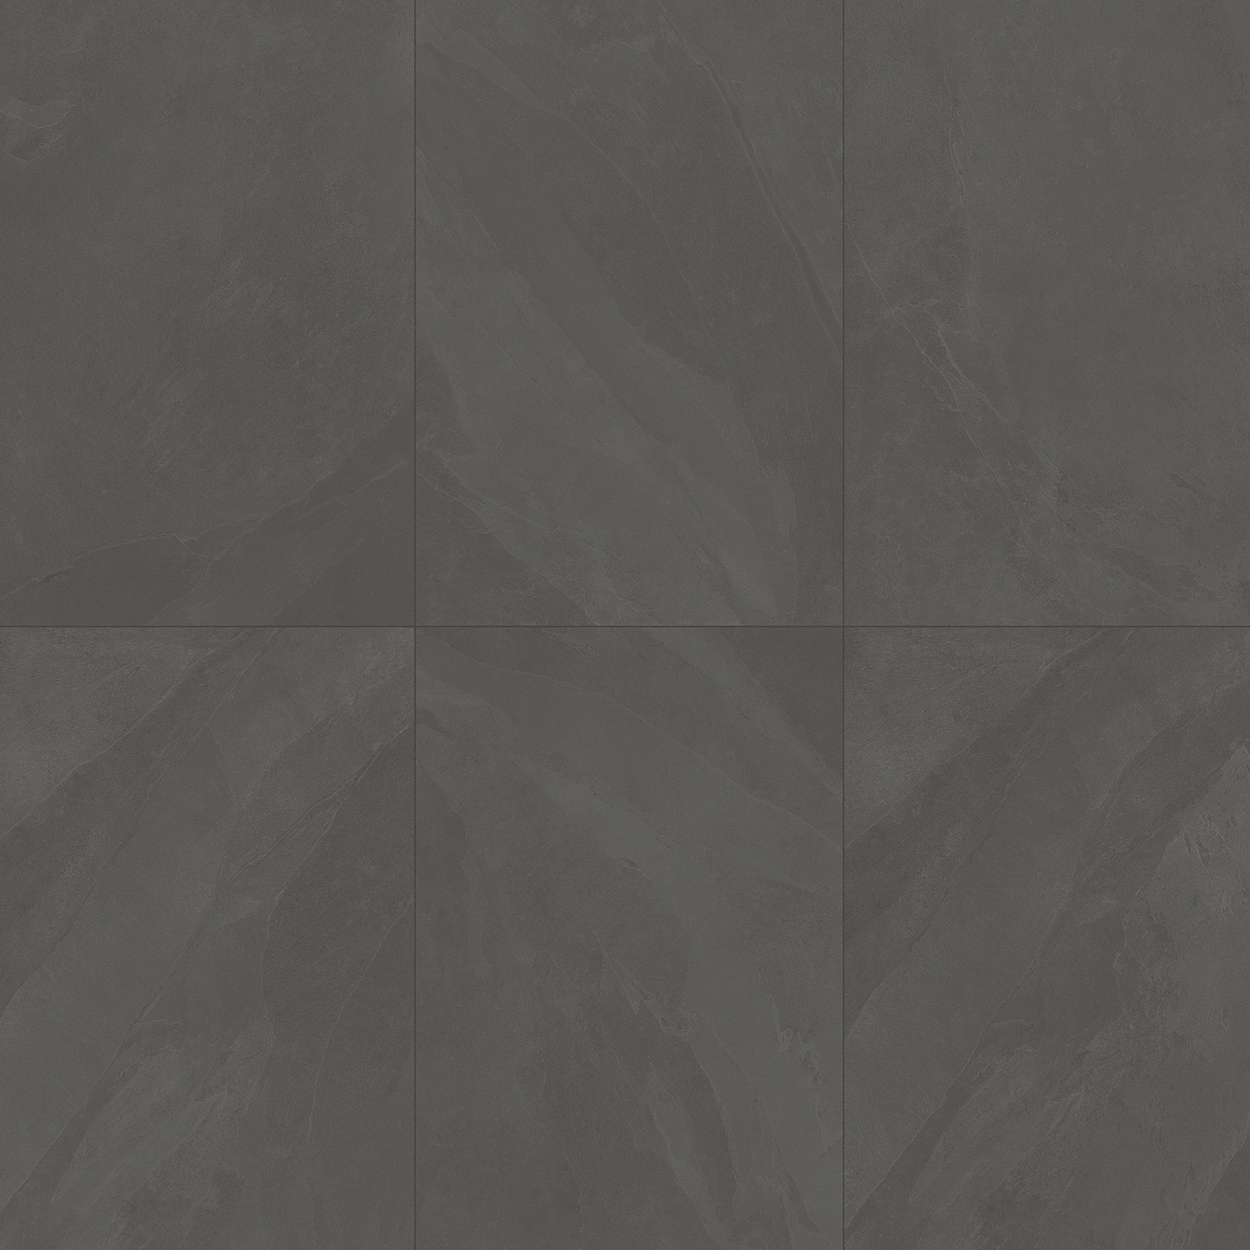 24 x 48 Brazilian Slate Pencil Grey Rectified Porcelain tile